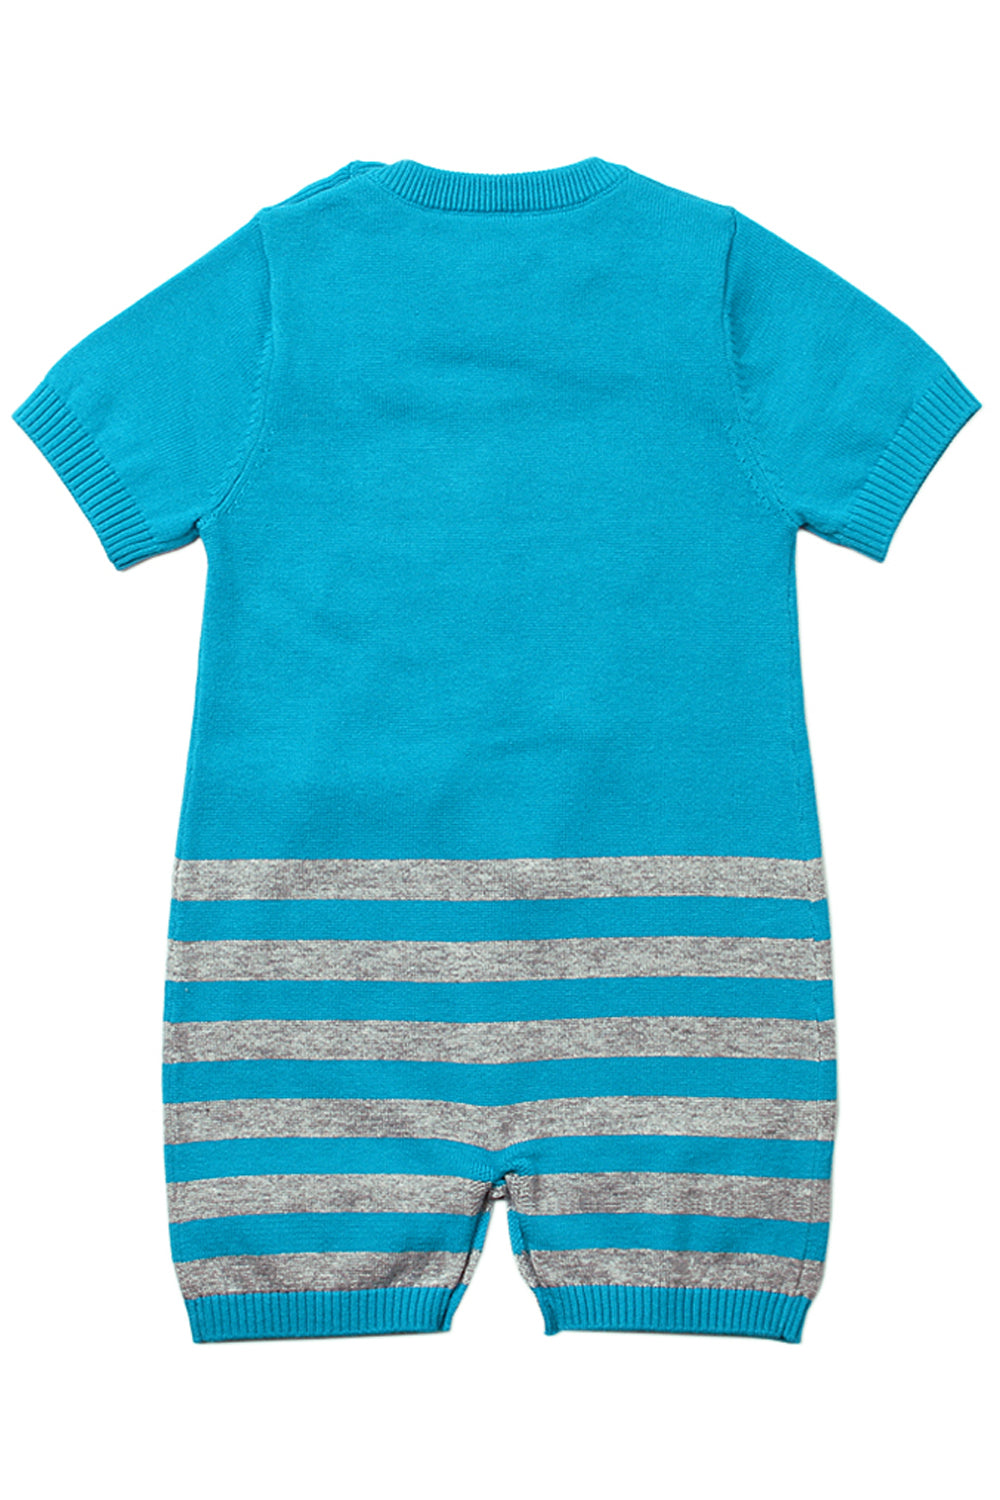 Blue Cute Cloud Pattern Knit Newborn Baby Romper